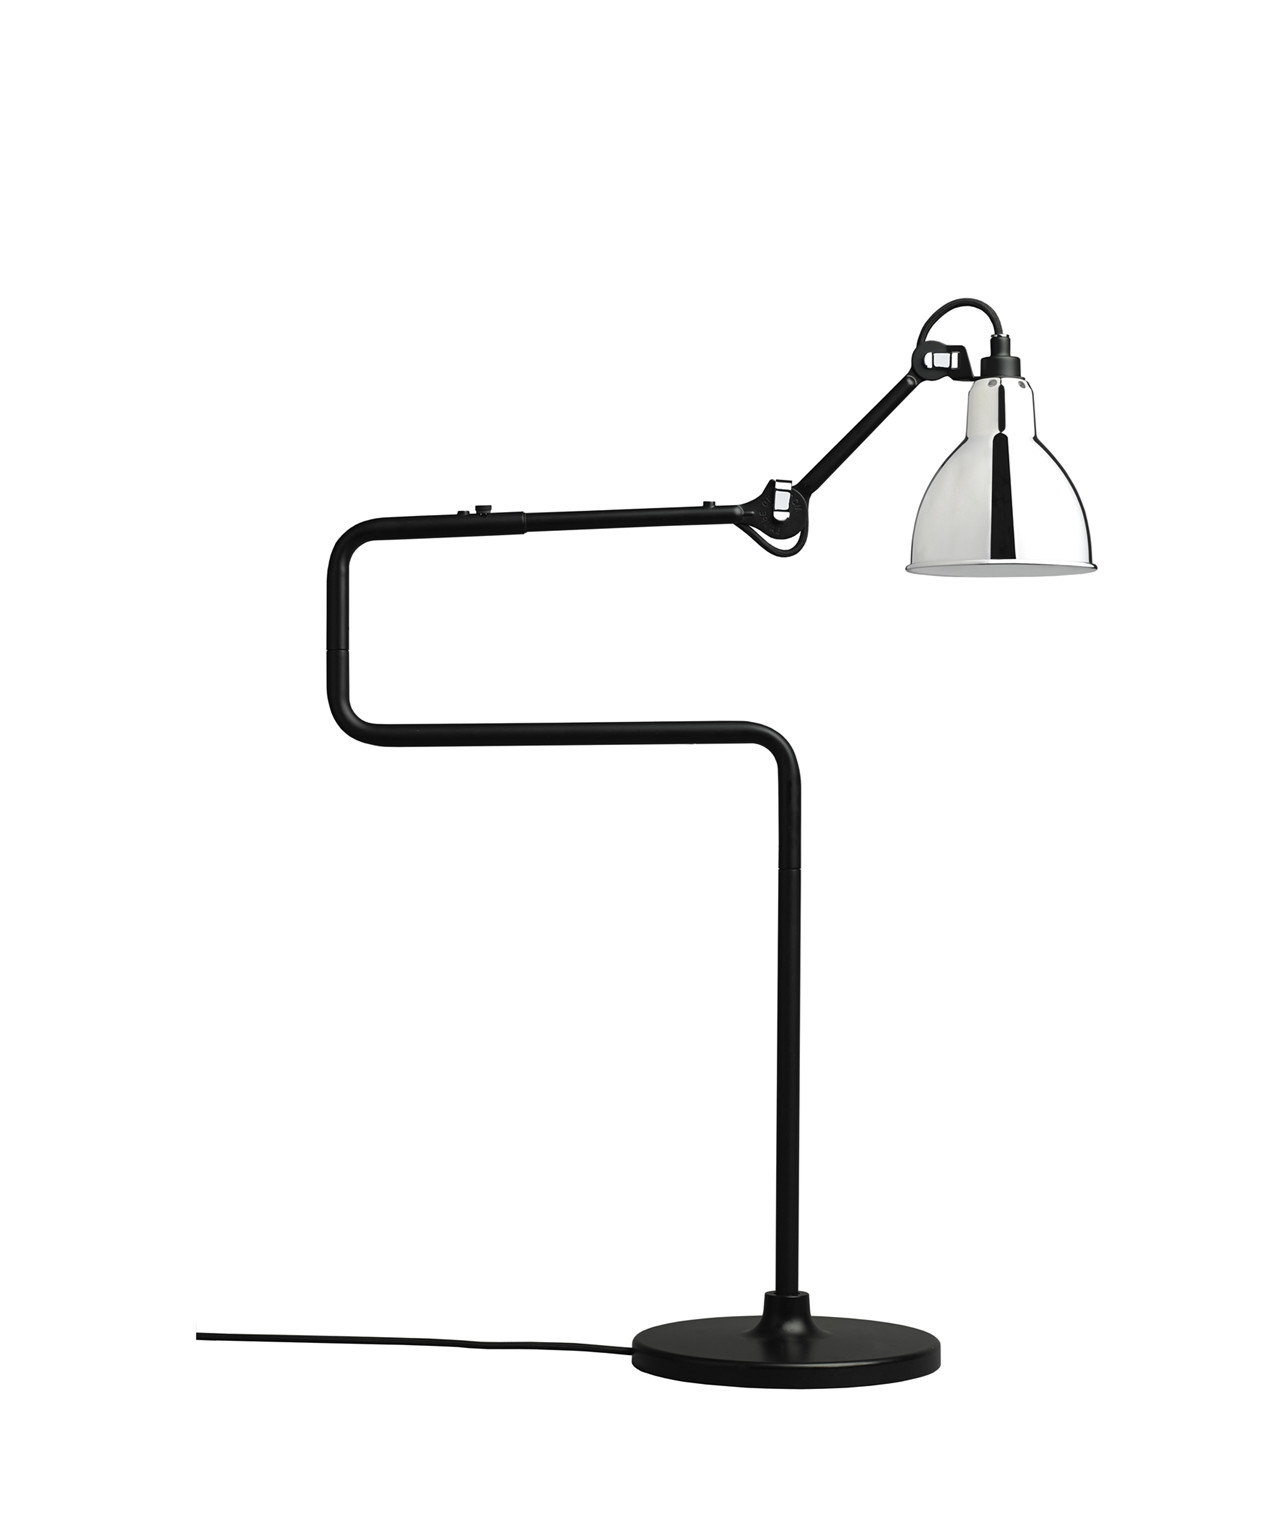 Image of   317 Bordlampe Krom - Lampe Gras